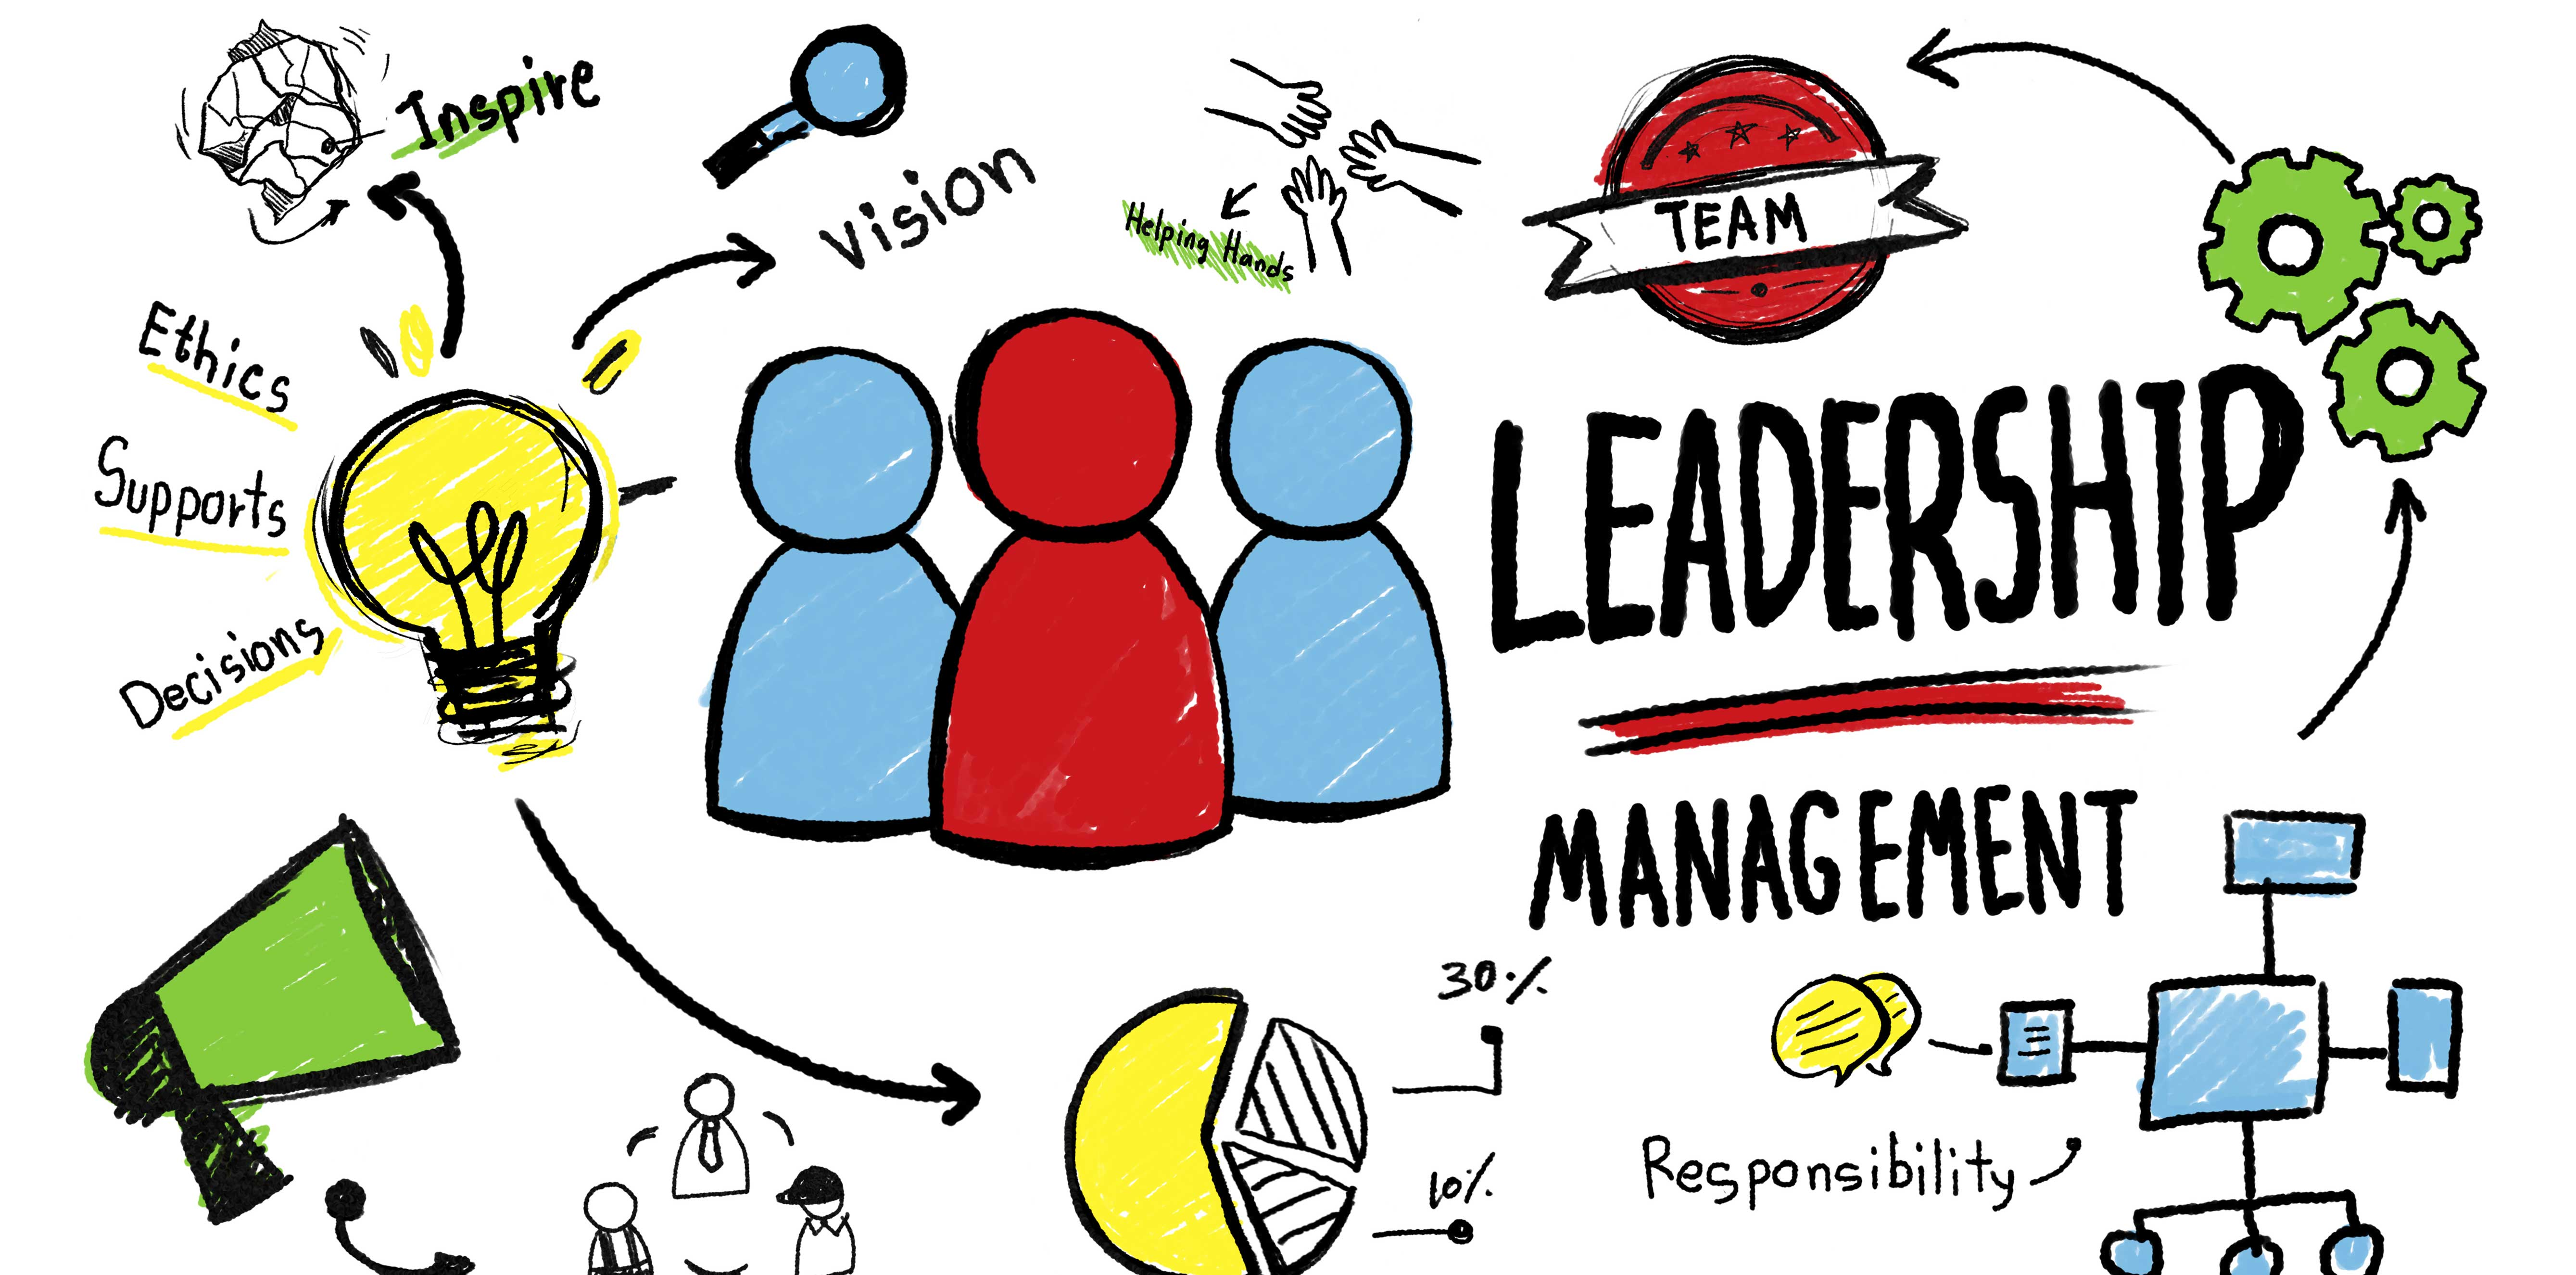 leadership management of the virgin group The virgin group is one of the world's most recognized and respected brands, with over 400 [] i caught up with sir richard branson, as he was releasing his latest book, the virgin way: everything i know about leadership.